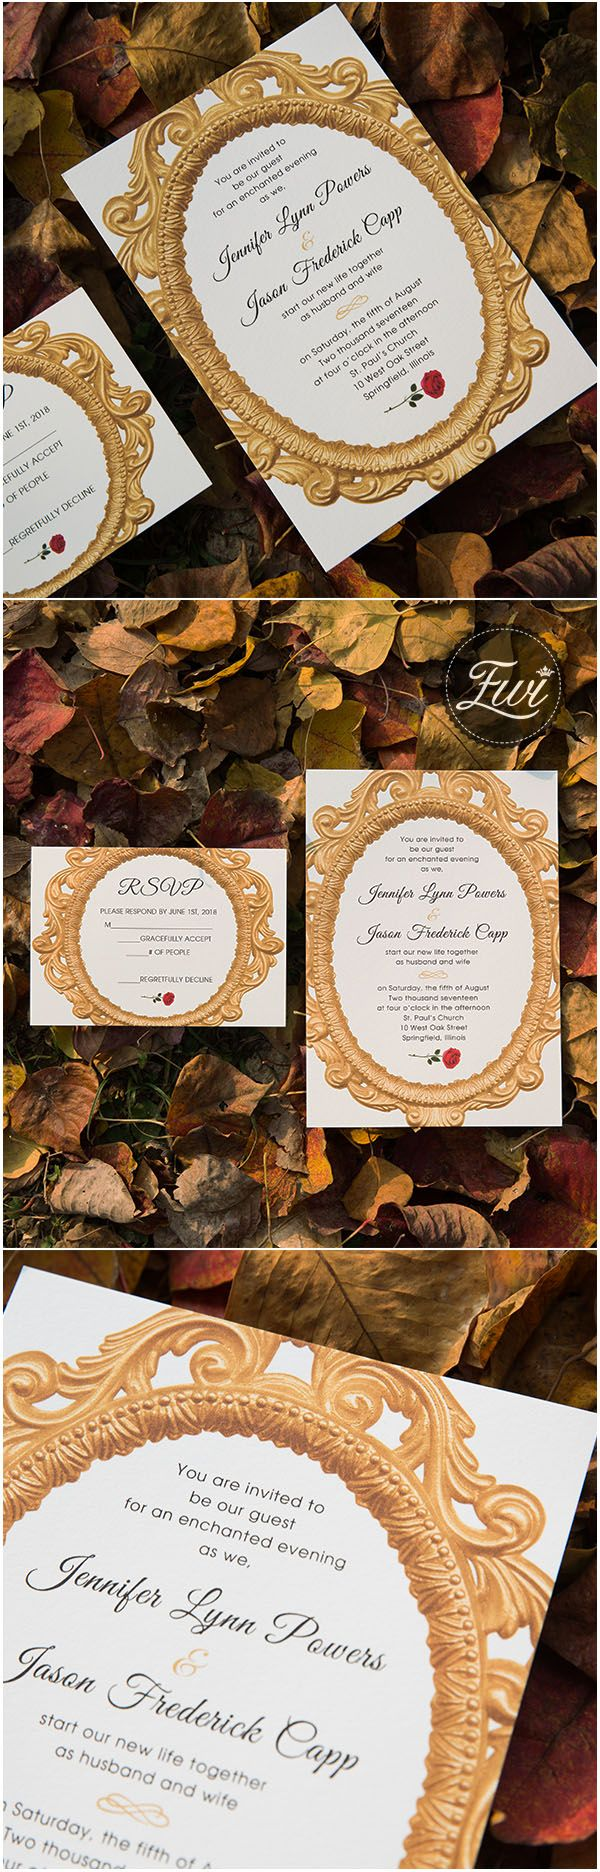 sample wedding invitation letter for uk visa%0A beauty and the beast fairy tale enchanted mirror and red rose wedding  invitations